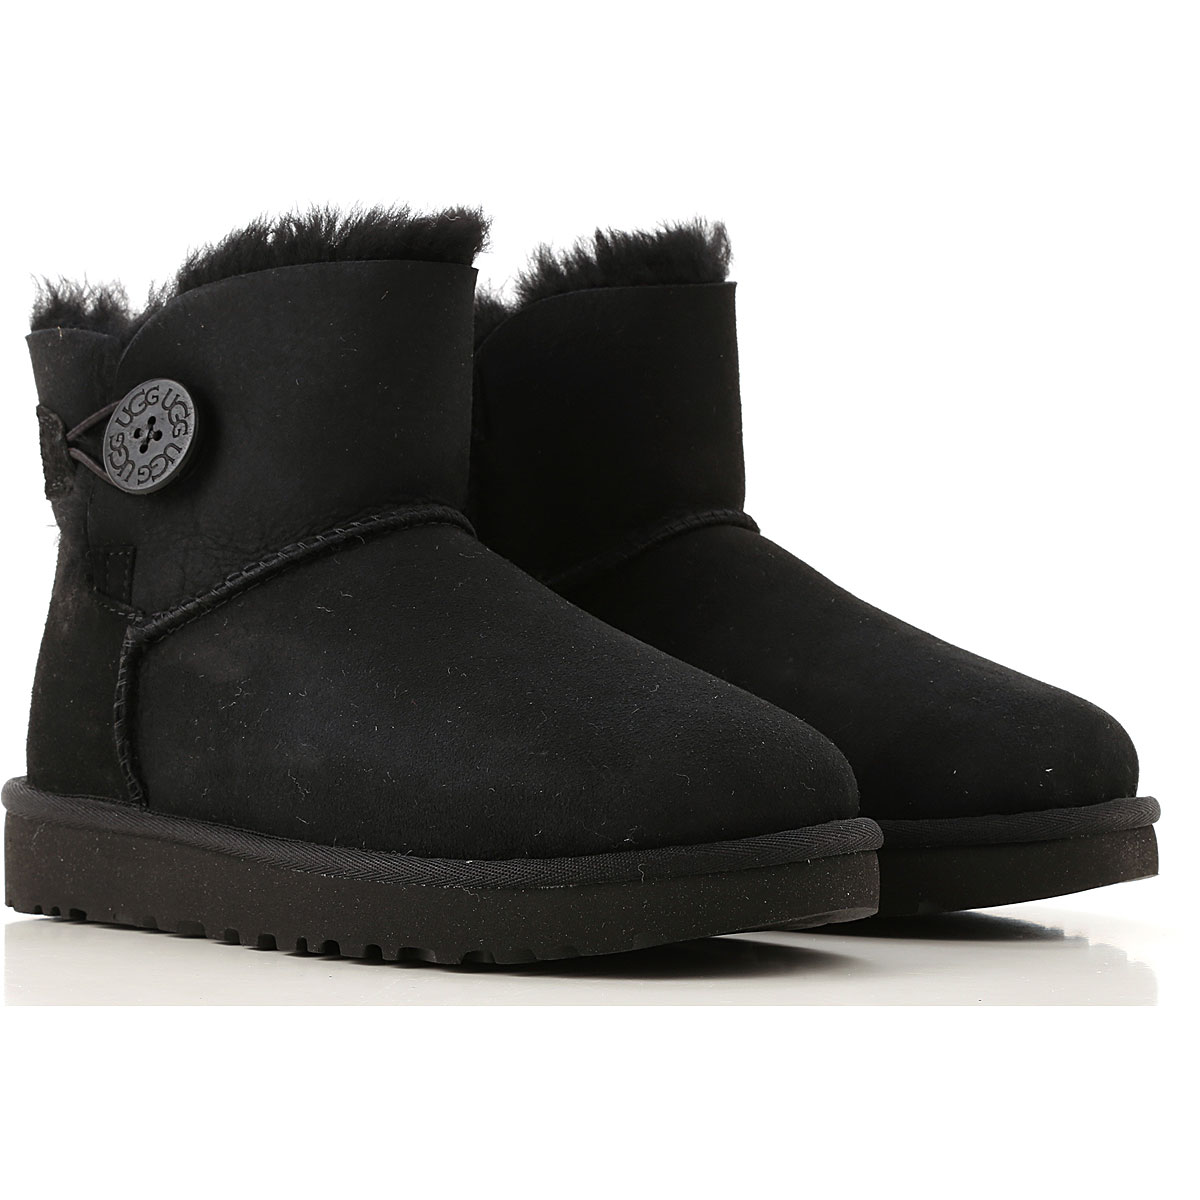 UGG Boots for Women, Booties On Sale, Black, Suede leather, 2019, USA 5 UK 3 5 EU 36 JAPAN 220 USA 6 UK 4 5 EU 37 JAPAN 230 USA 7 UK 5 5 EU 38